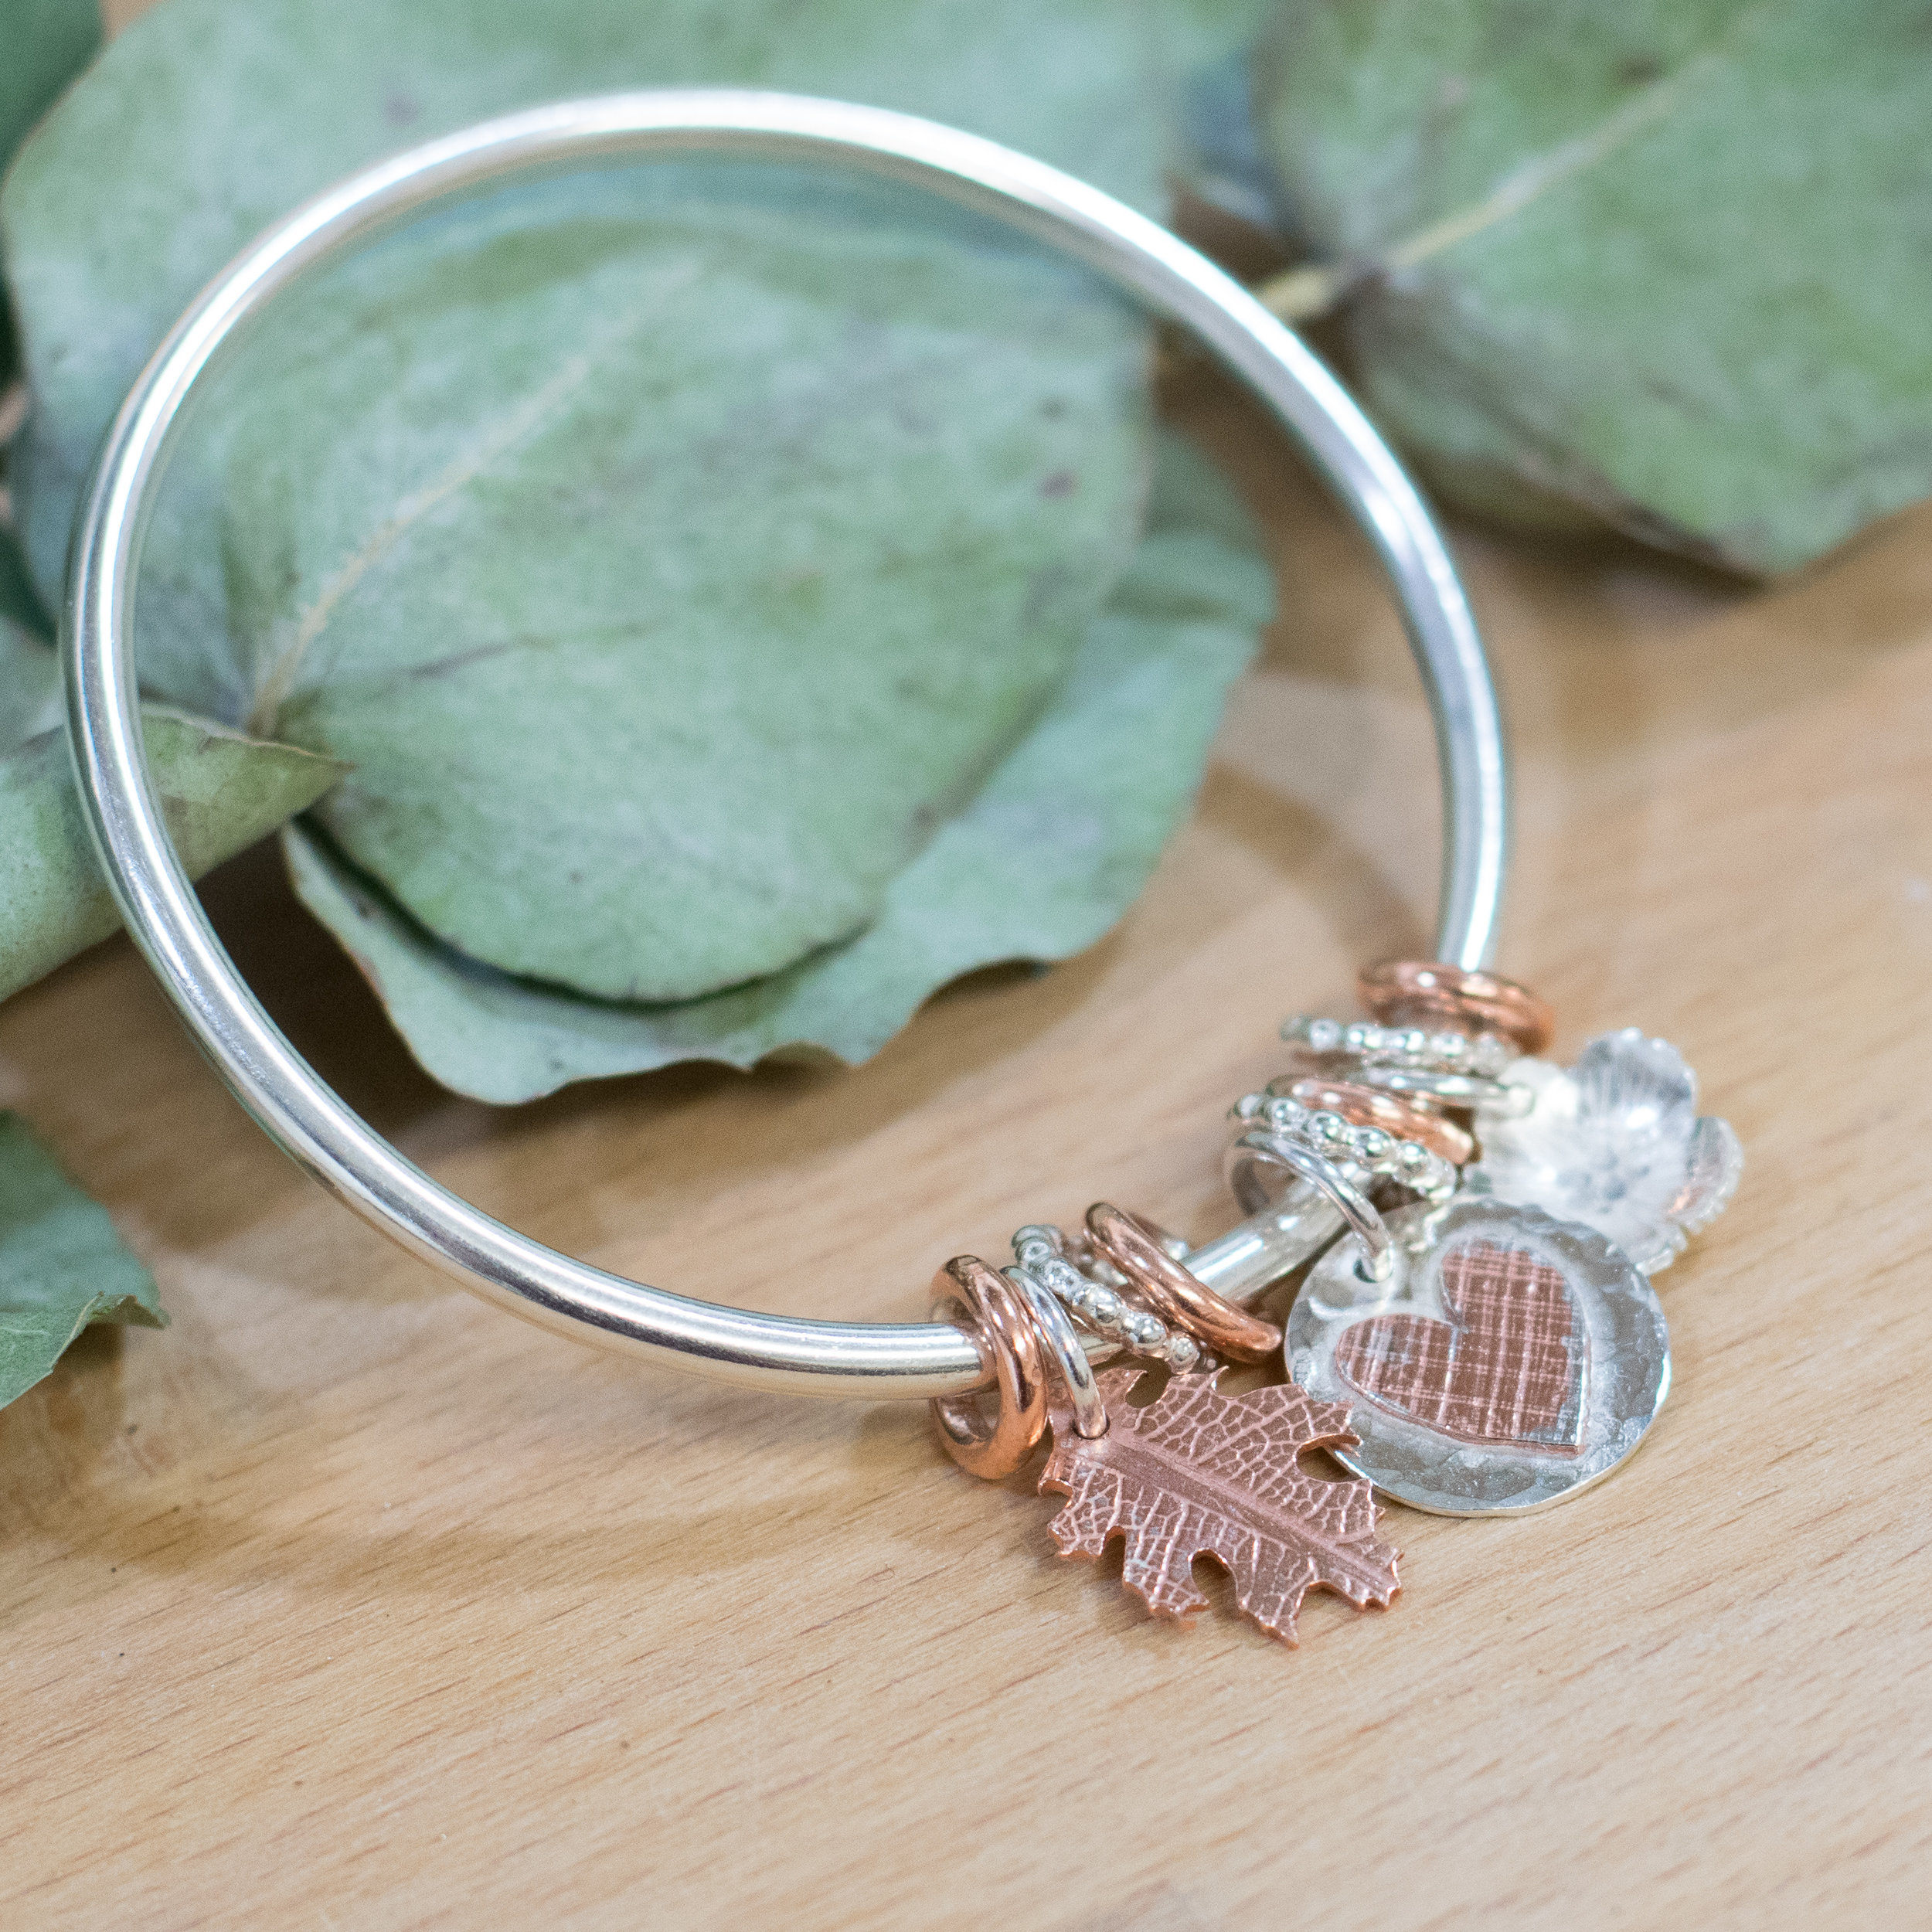 Make your own charm bangle workshop - £150 -